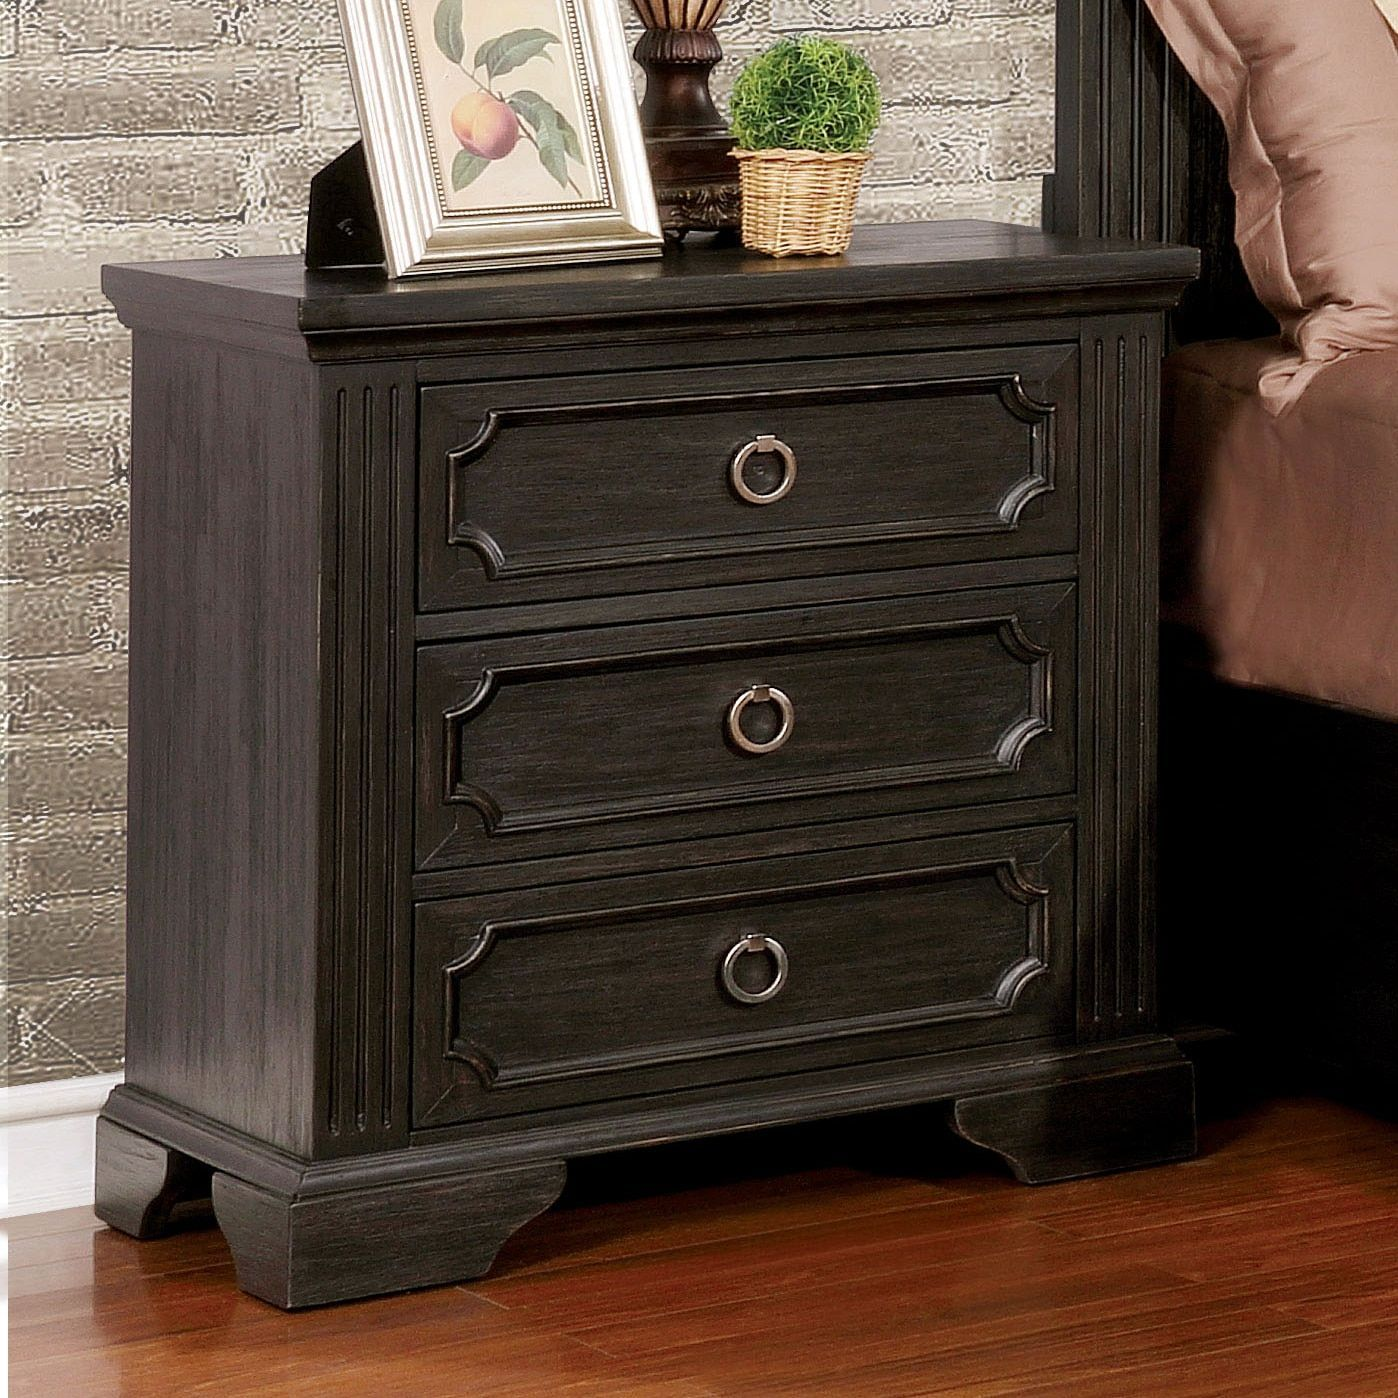 Furniture Of America Hollen Wire Brushed Black 3 Drawer Nightstand (Wire Brushed Black)